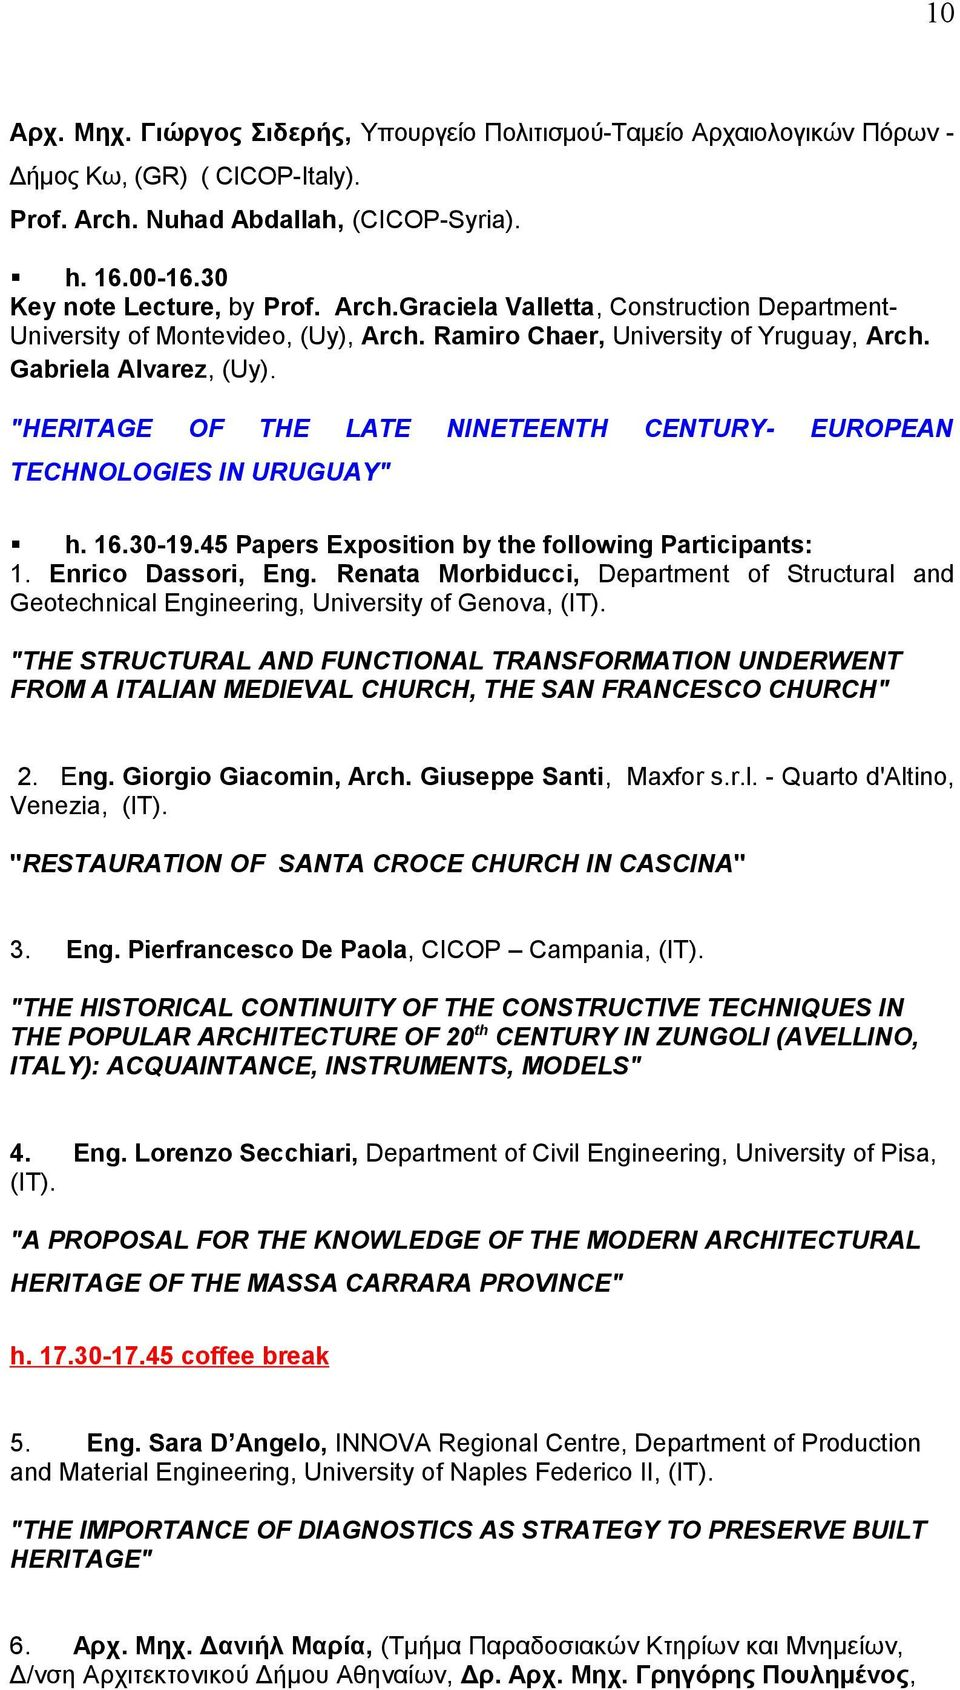 """HERITAGE OF THE LATE NINETEENTH CENTURY- EUROPEAN TECHNOLOGIES IN URUGUAY"" h. 16.30-19.45 Papers Exposition by the following Participants: 1. Enrico Dassori, Eng."